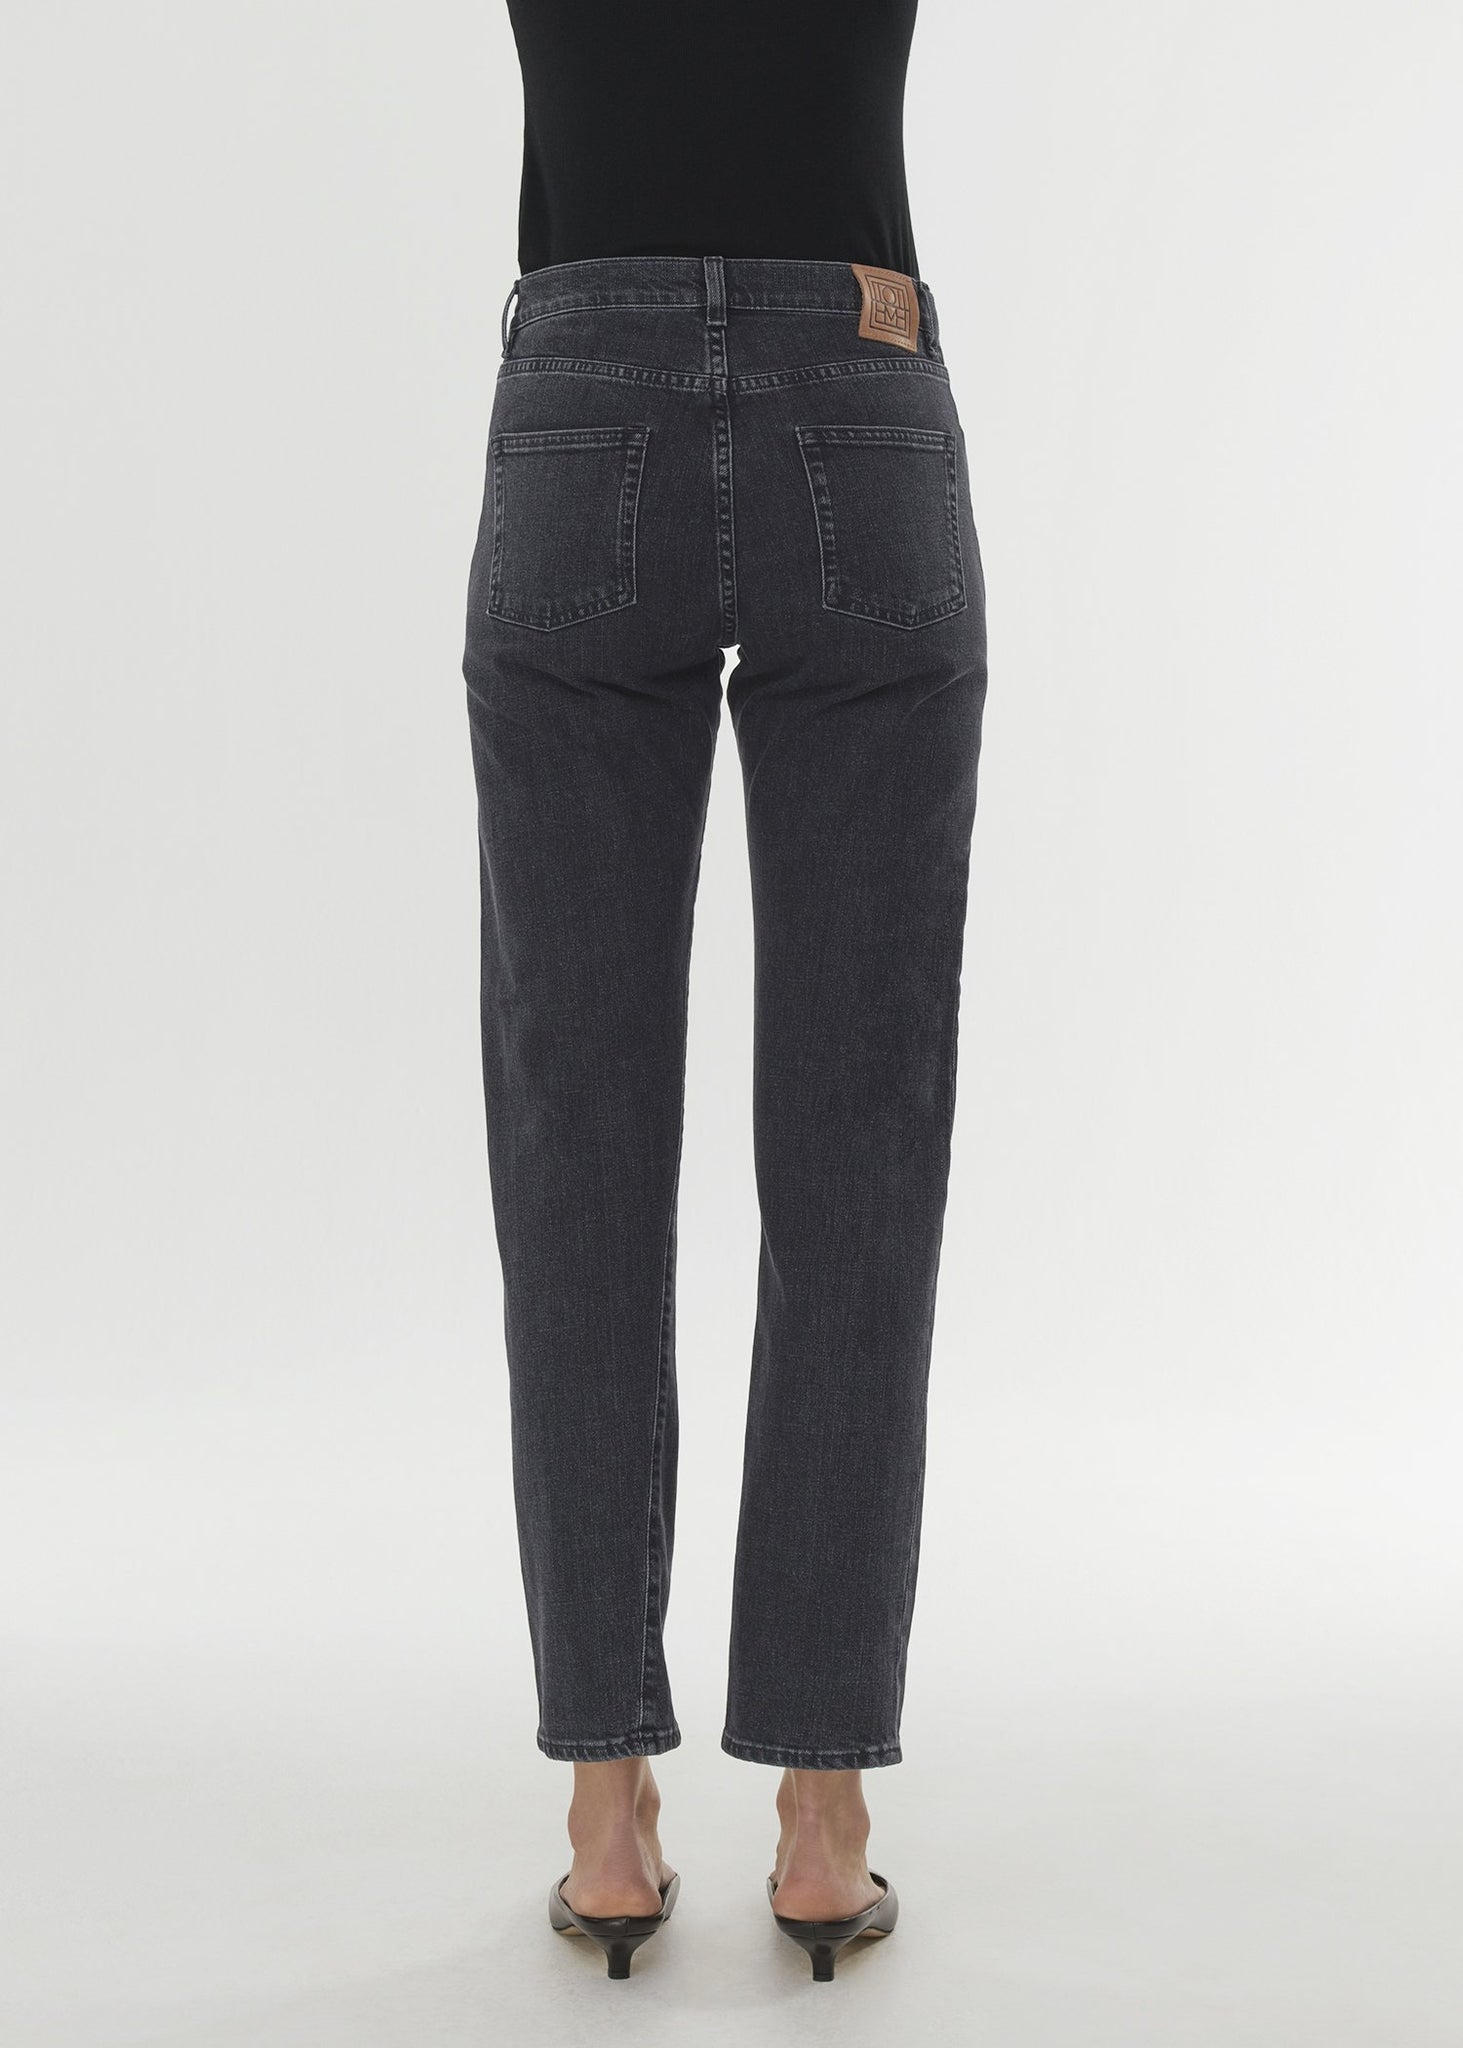 Twisted seam denim grey wash